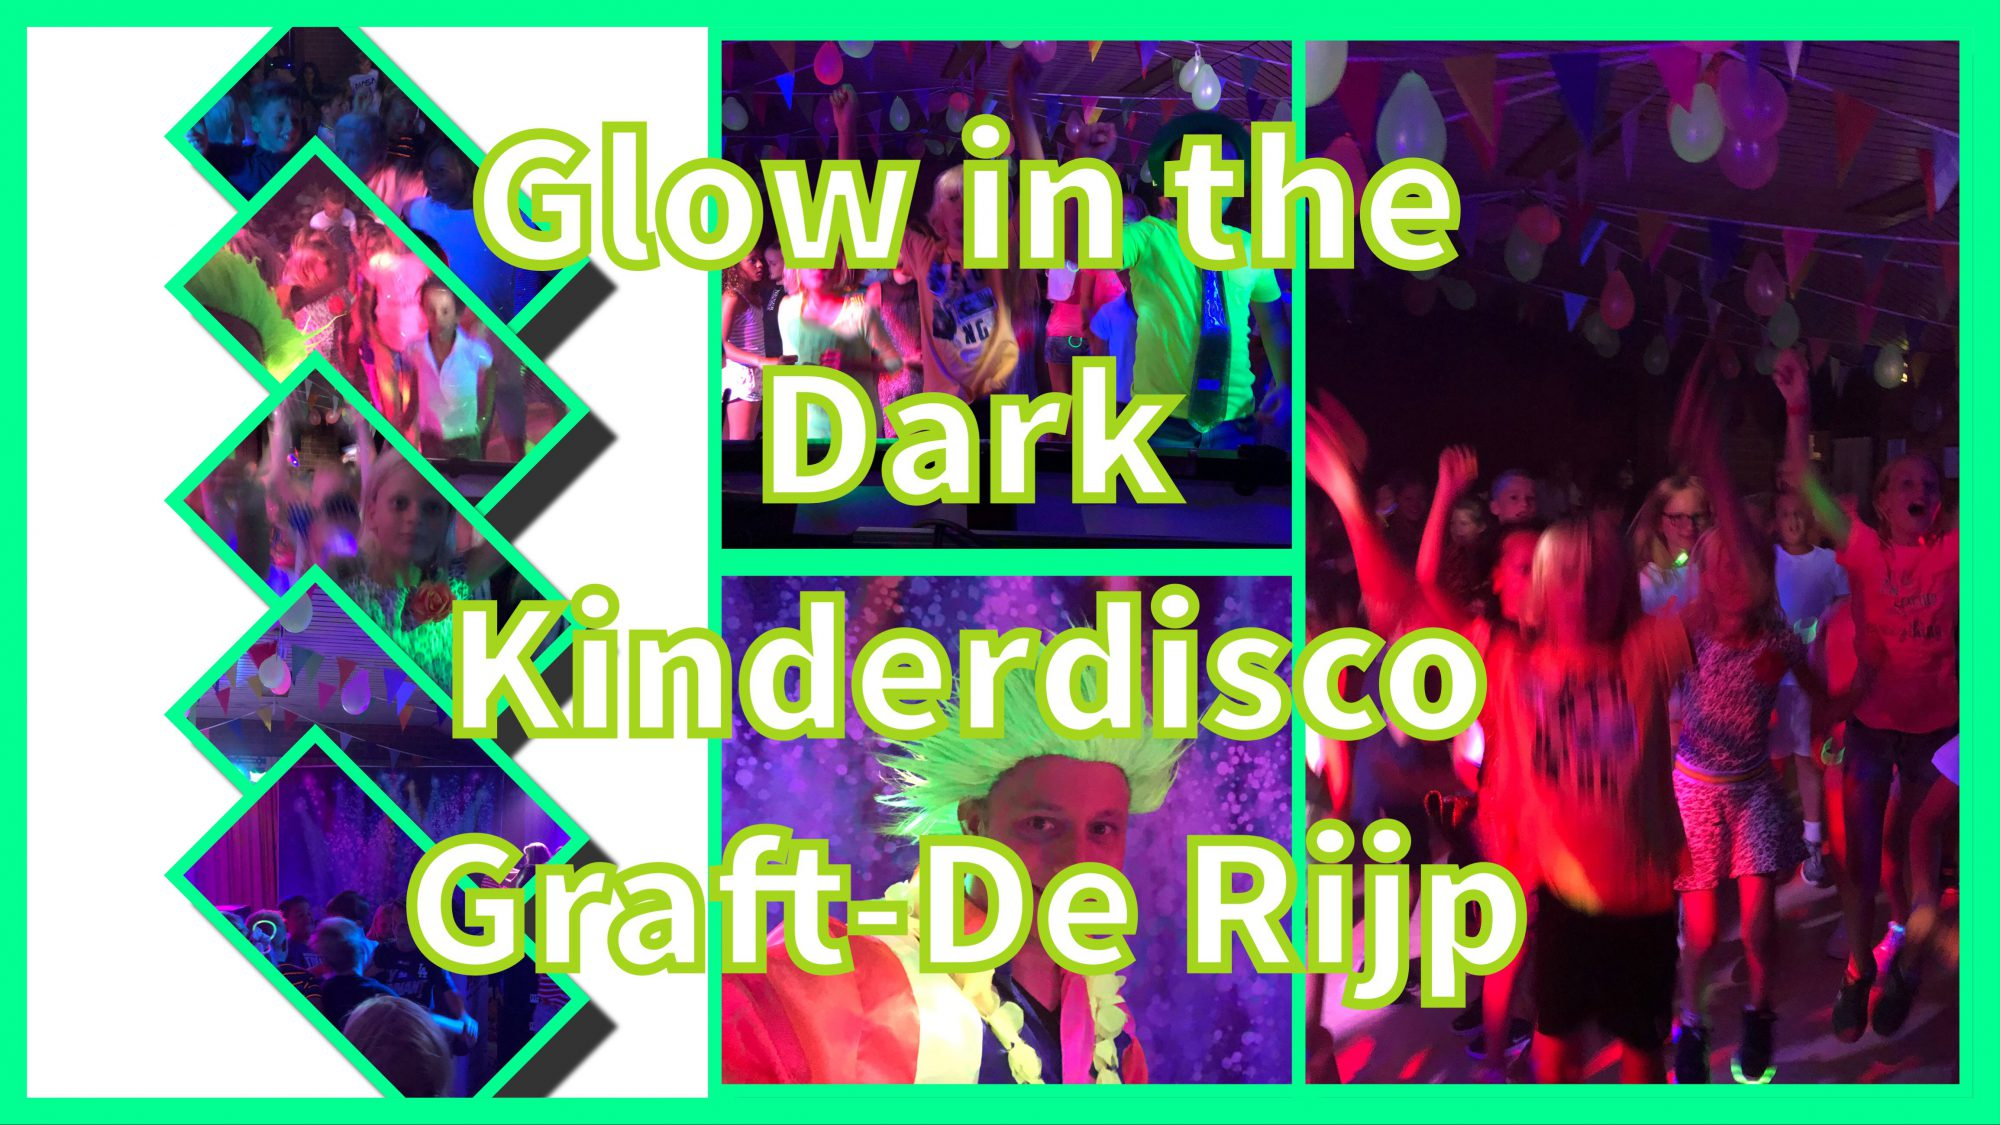 Glow in the Dark Kinderdisco Graft-De Rijp